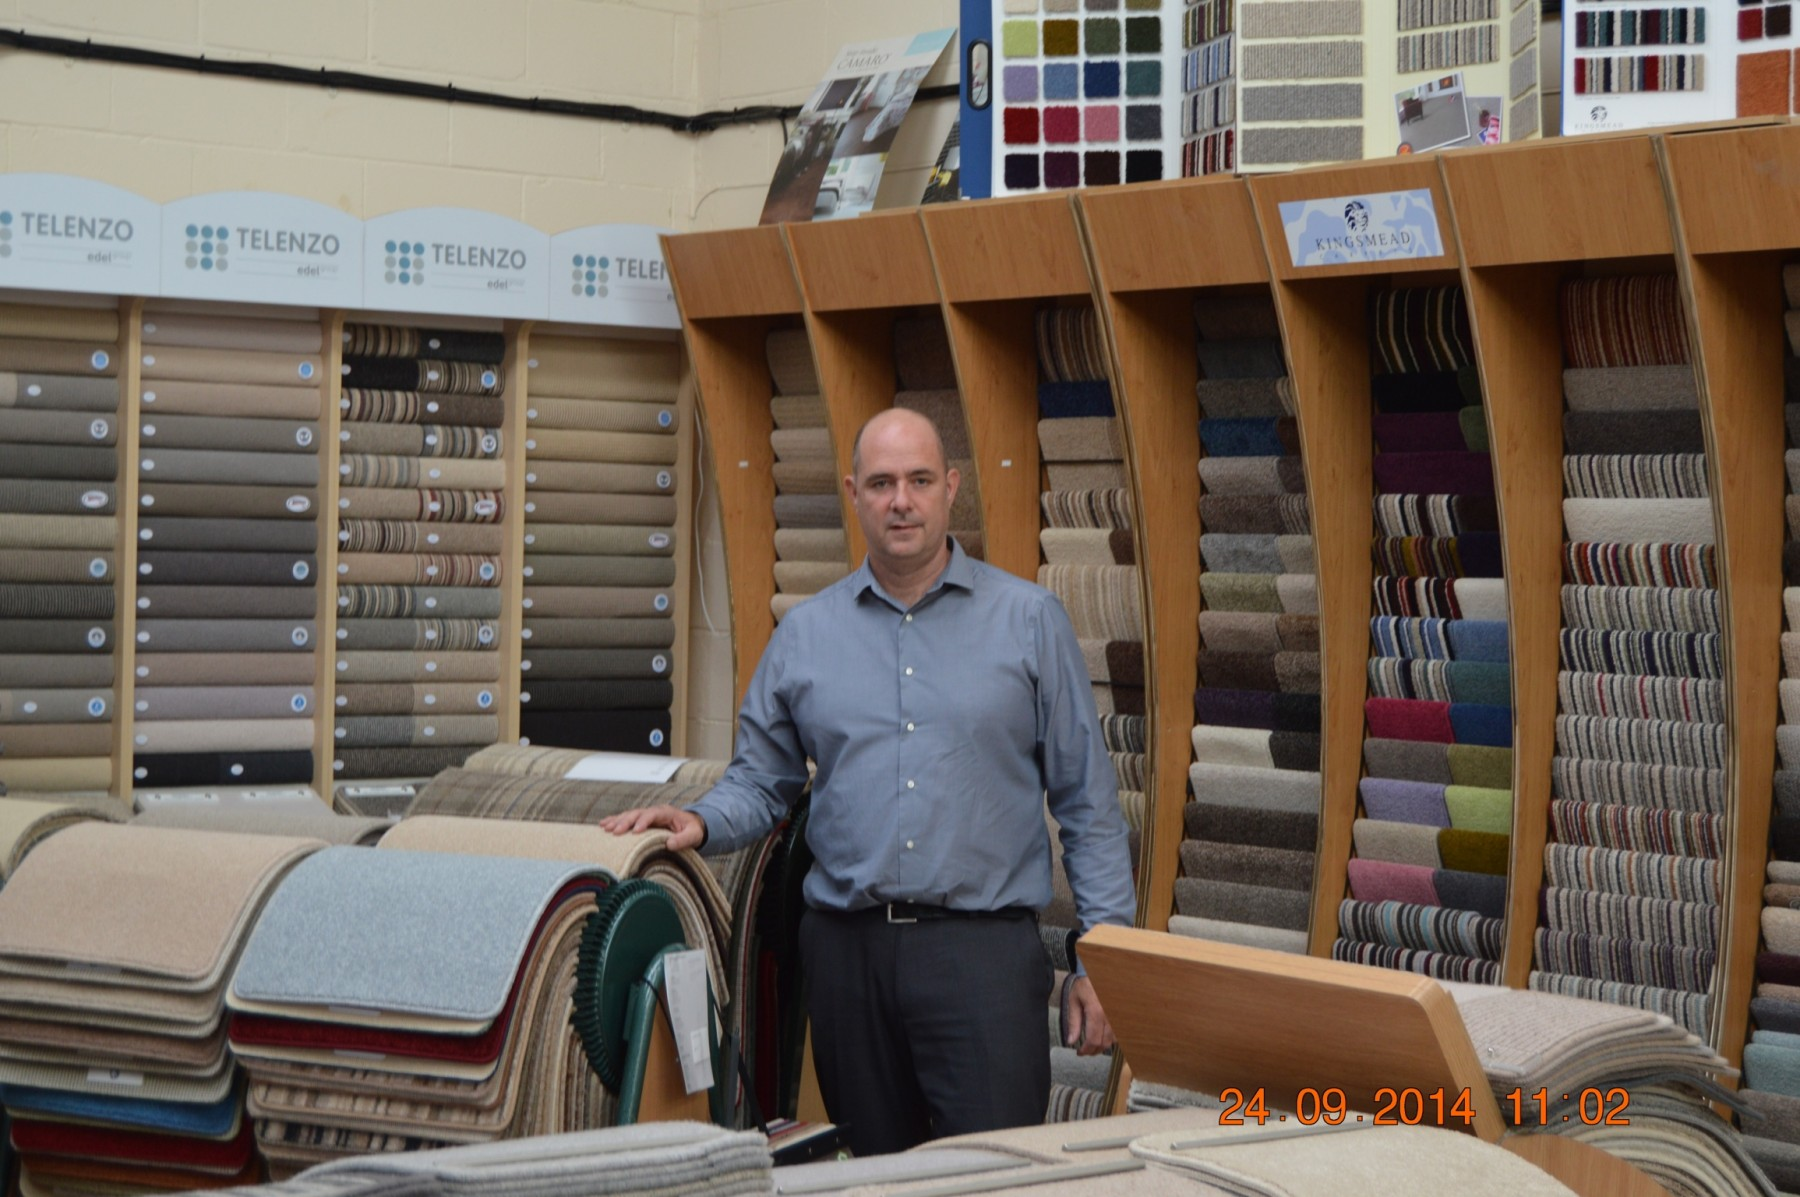 Man stood in a carpet showroom with the date in the bottom right